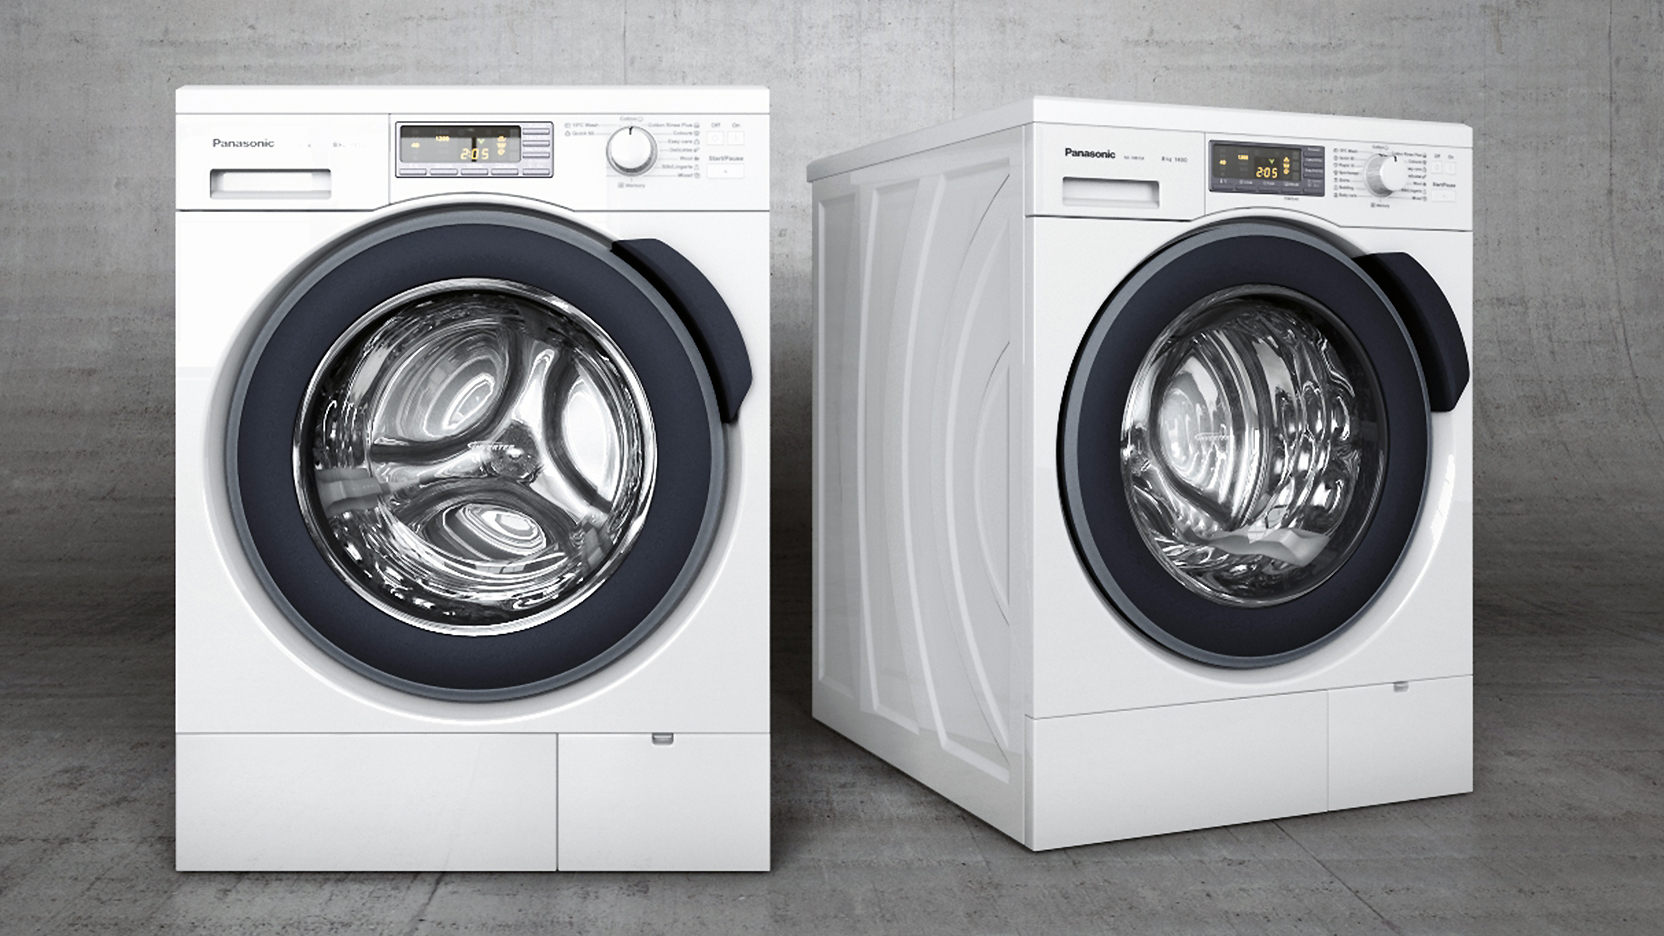 Which firms washing machine is better: how to choose the rating of brands and models 79